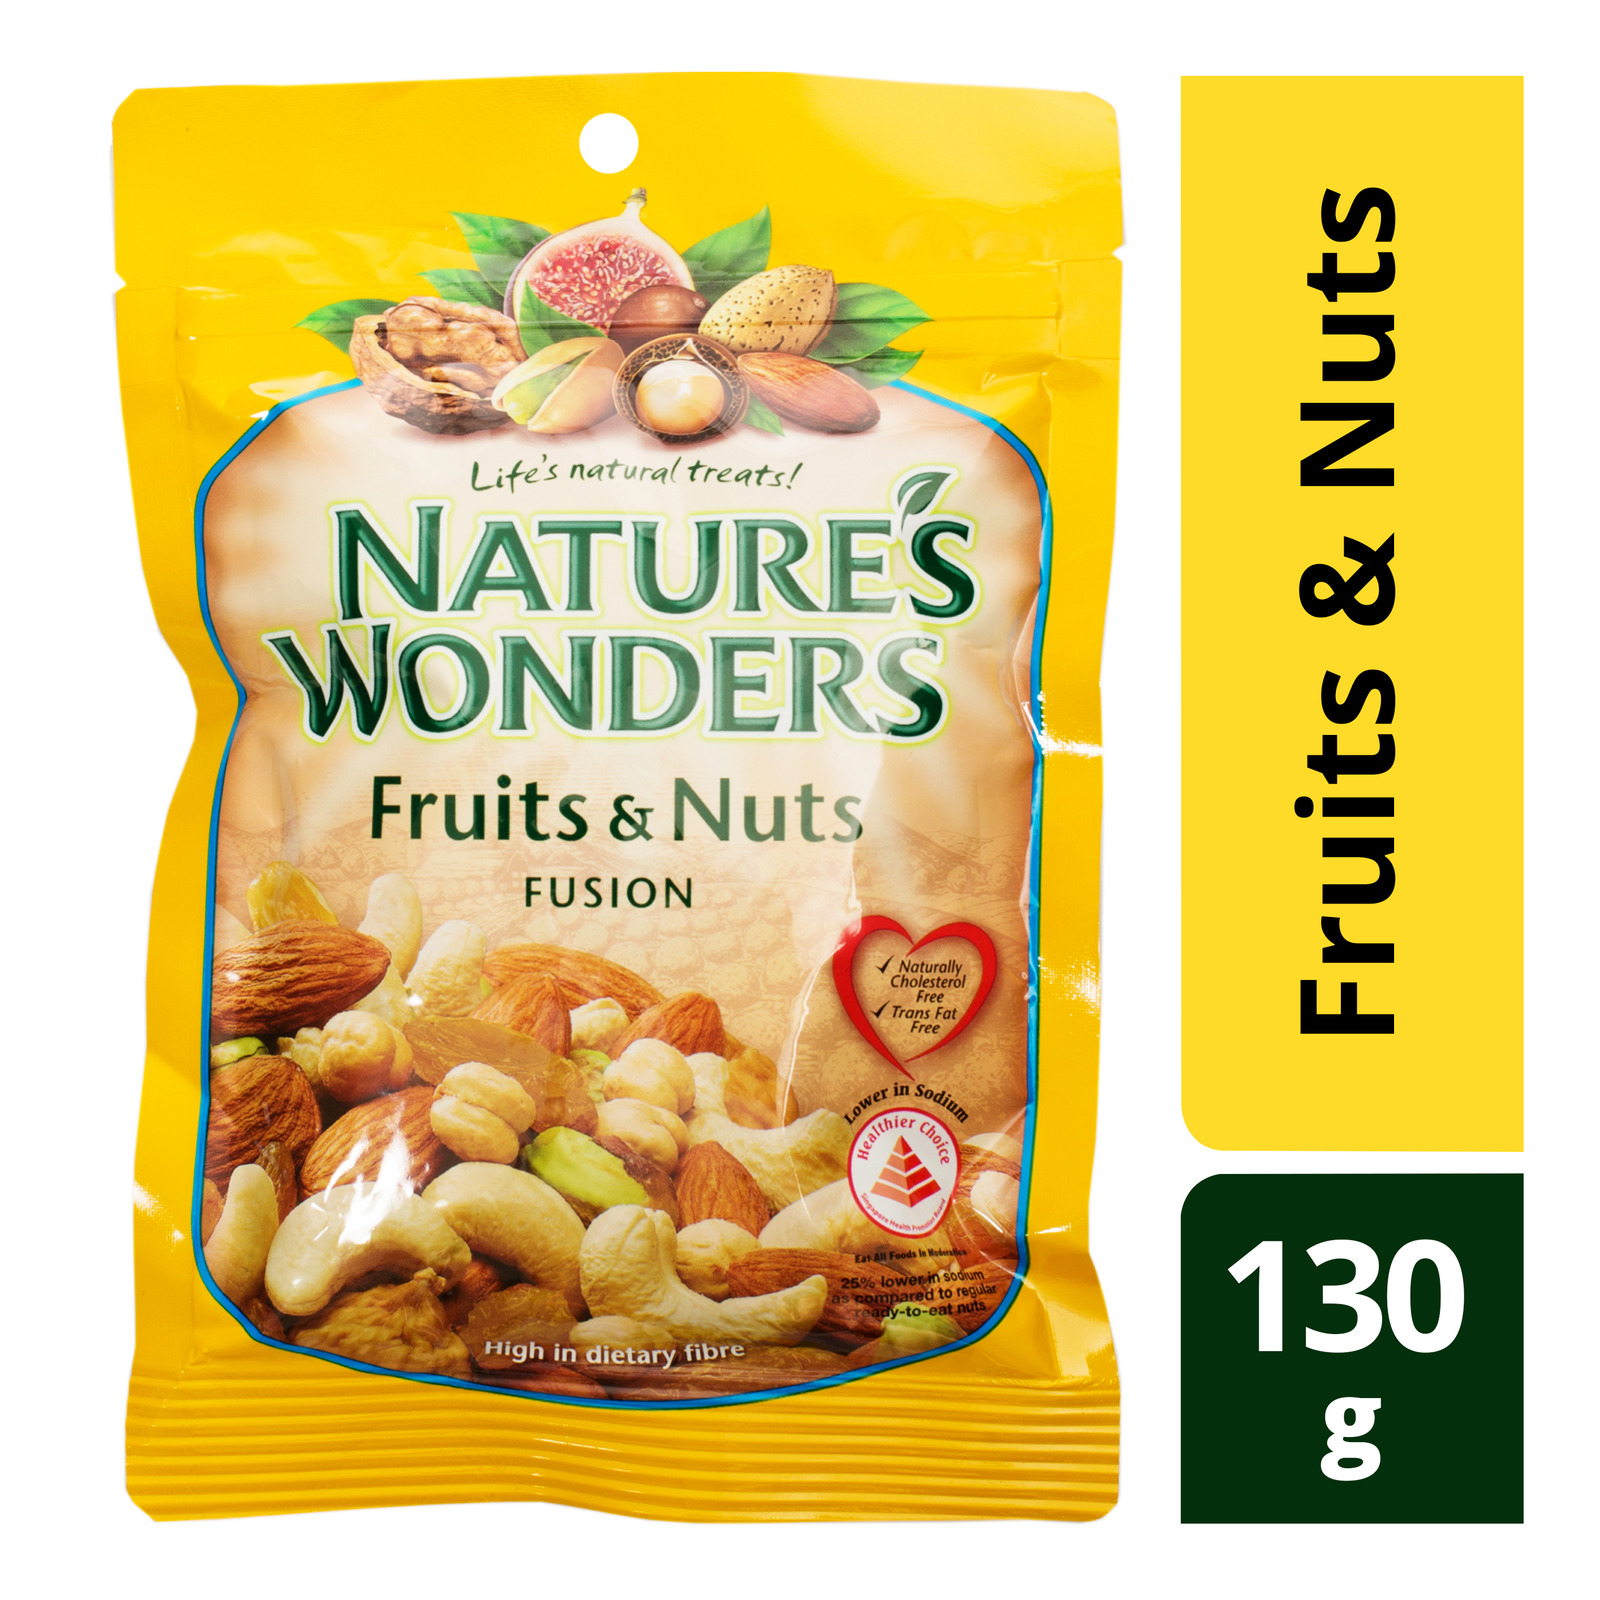 NATURES WONDERS Fruits & Nut Fusion 130g